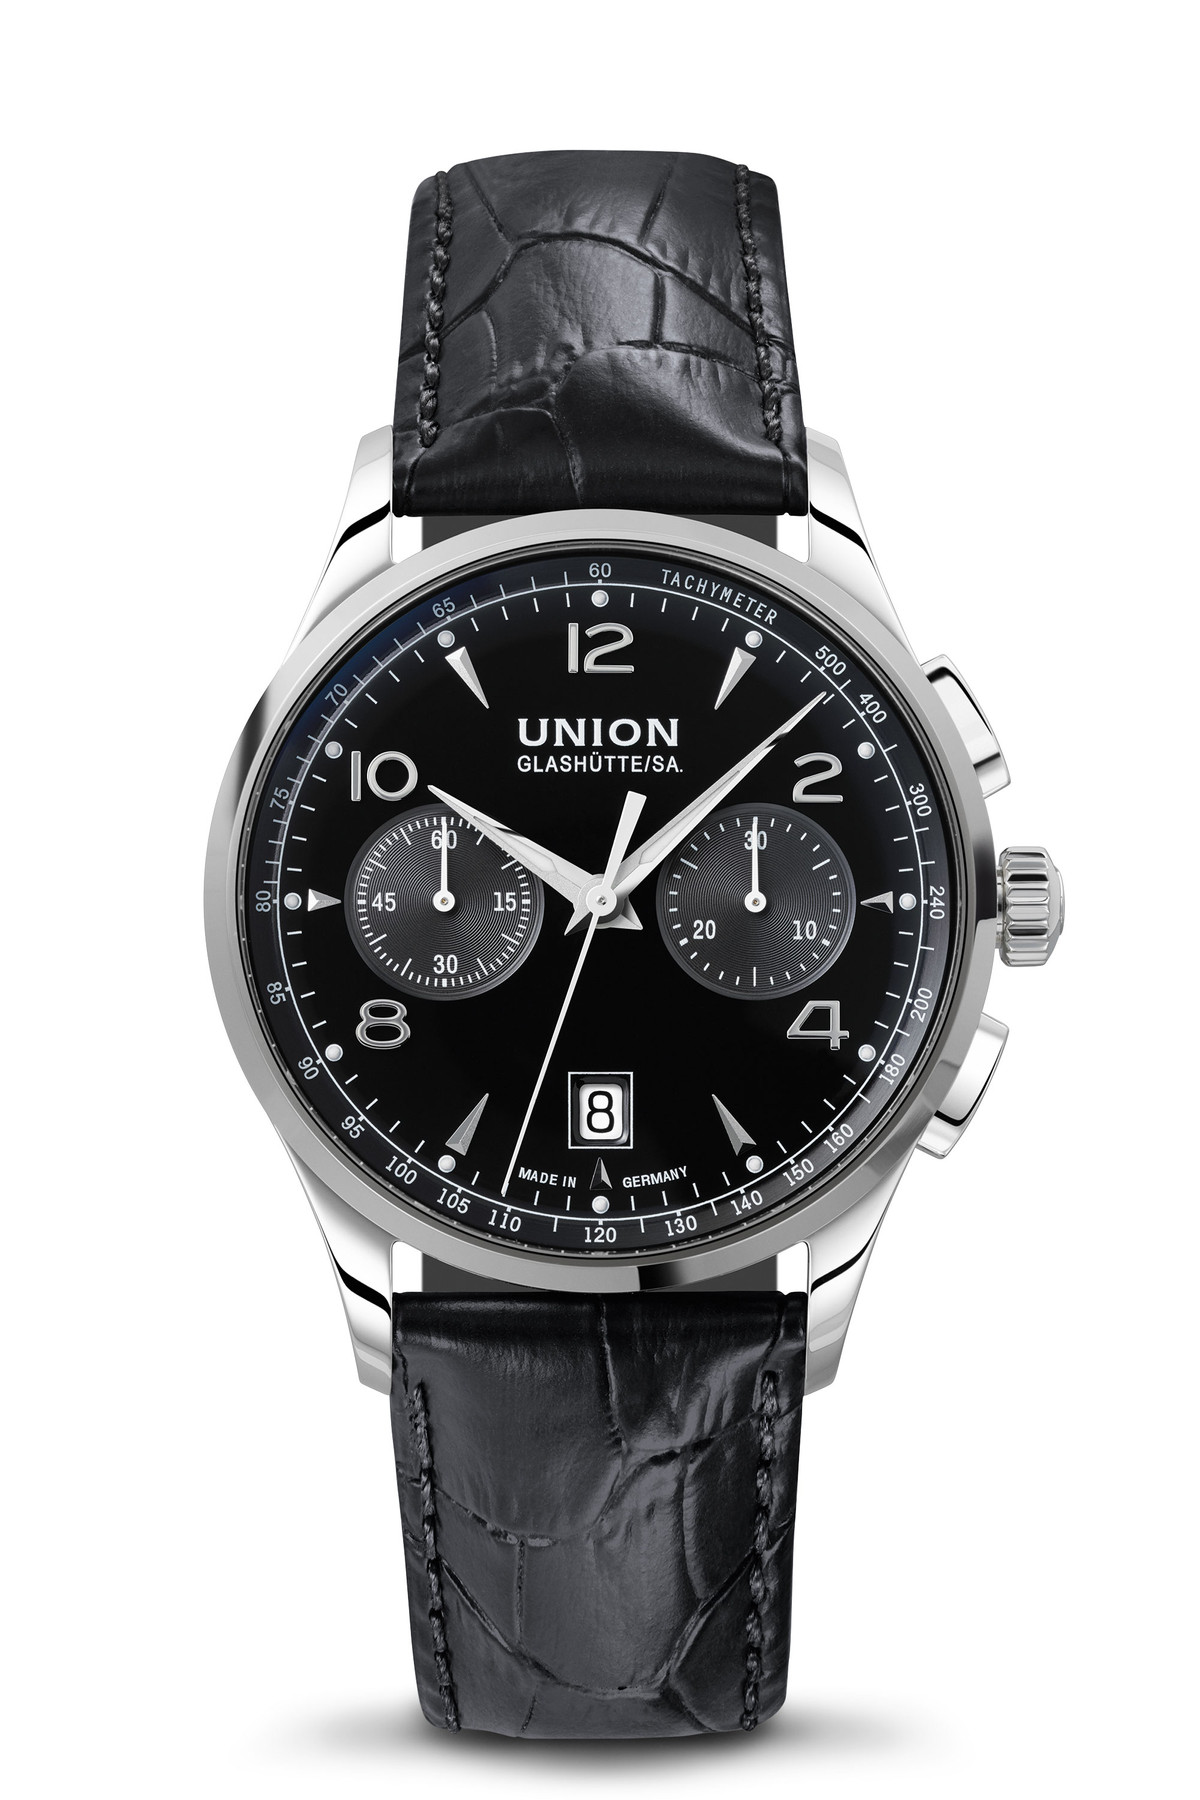 UNION Glashütte / SA. Union Glashütte Noramis Chronograph D008.427.16.057.00